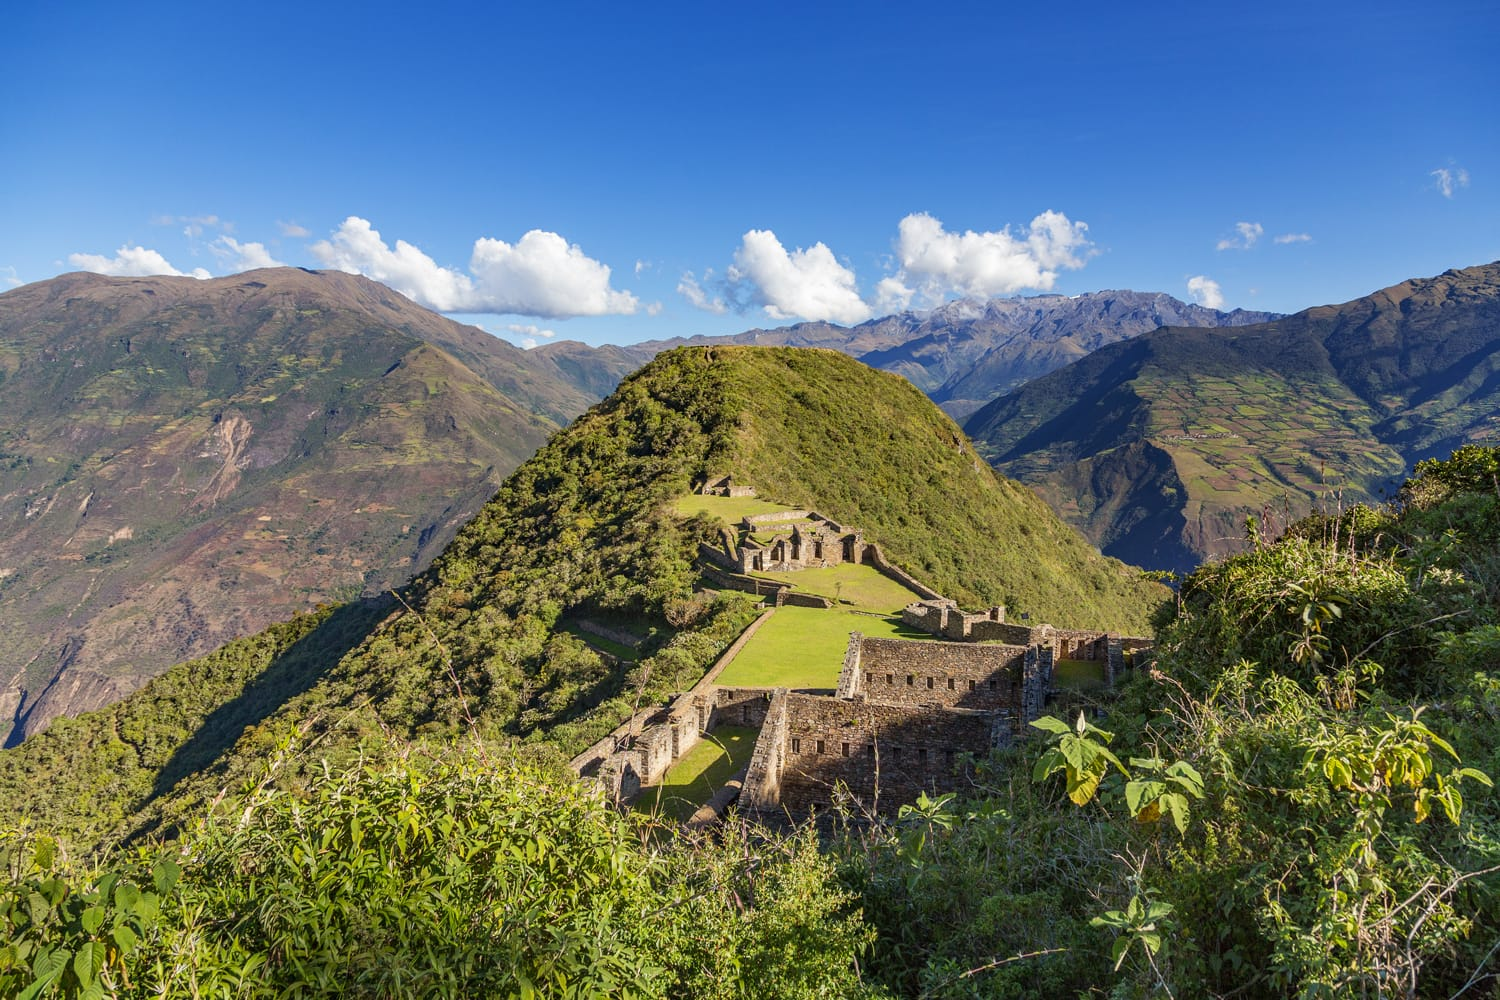 Choquequirao Inca city in Peru